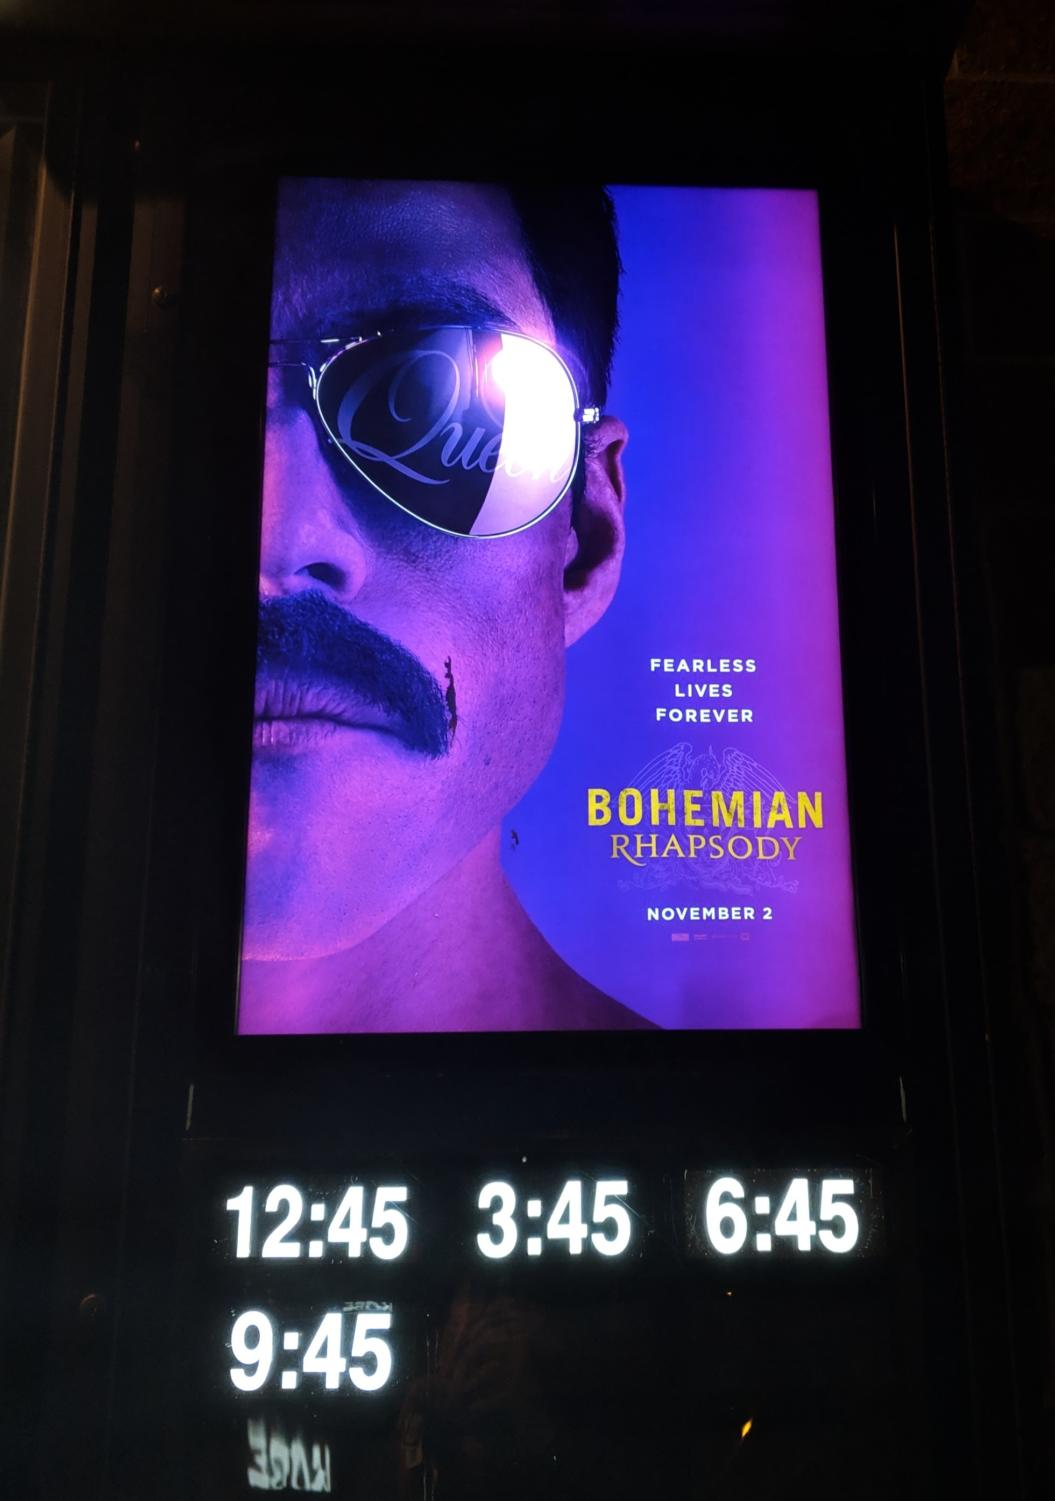 The movie poster that is outside of the theater.